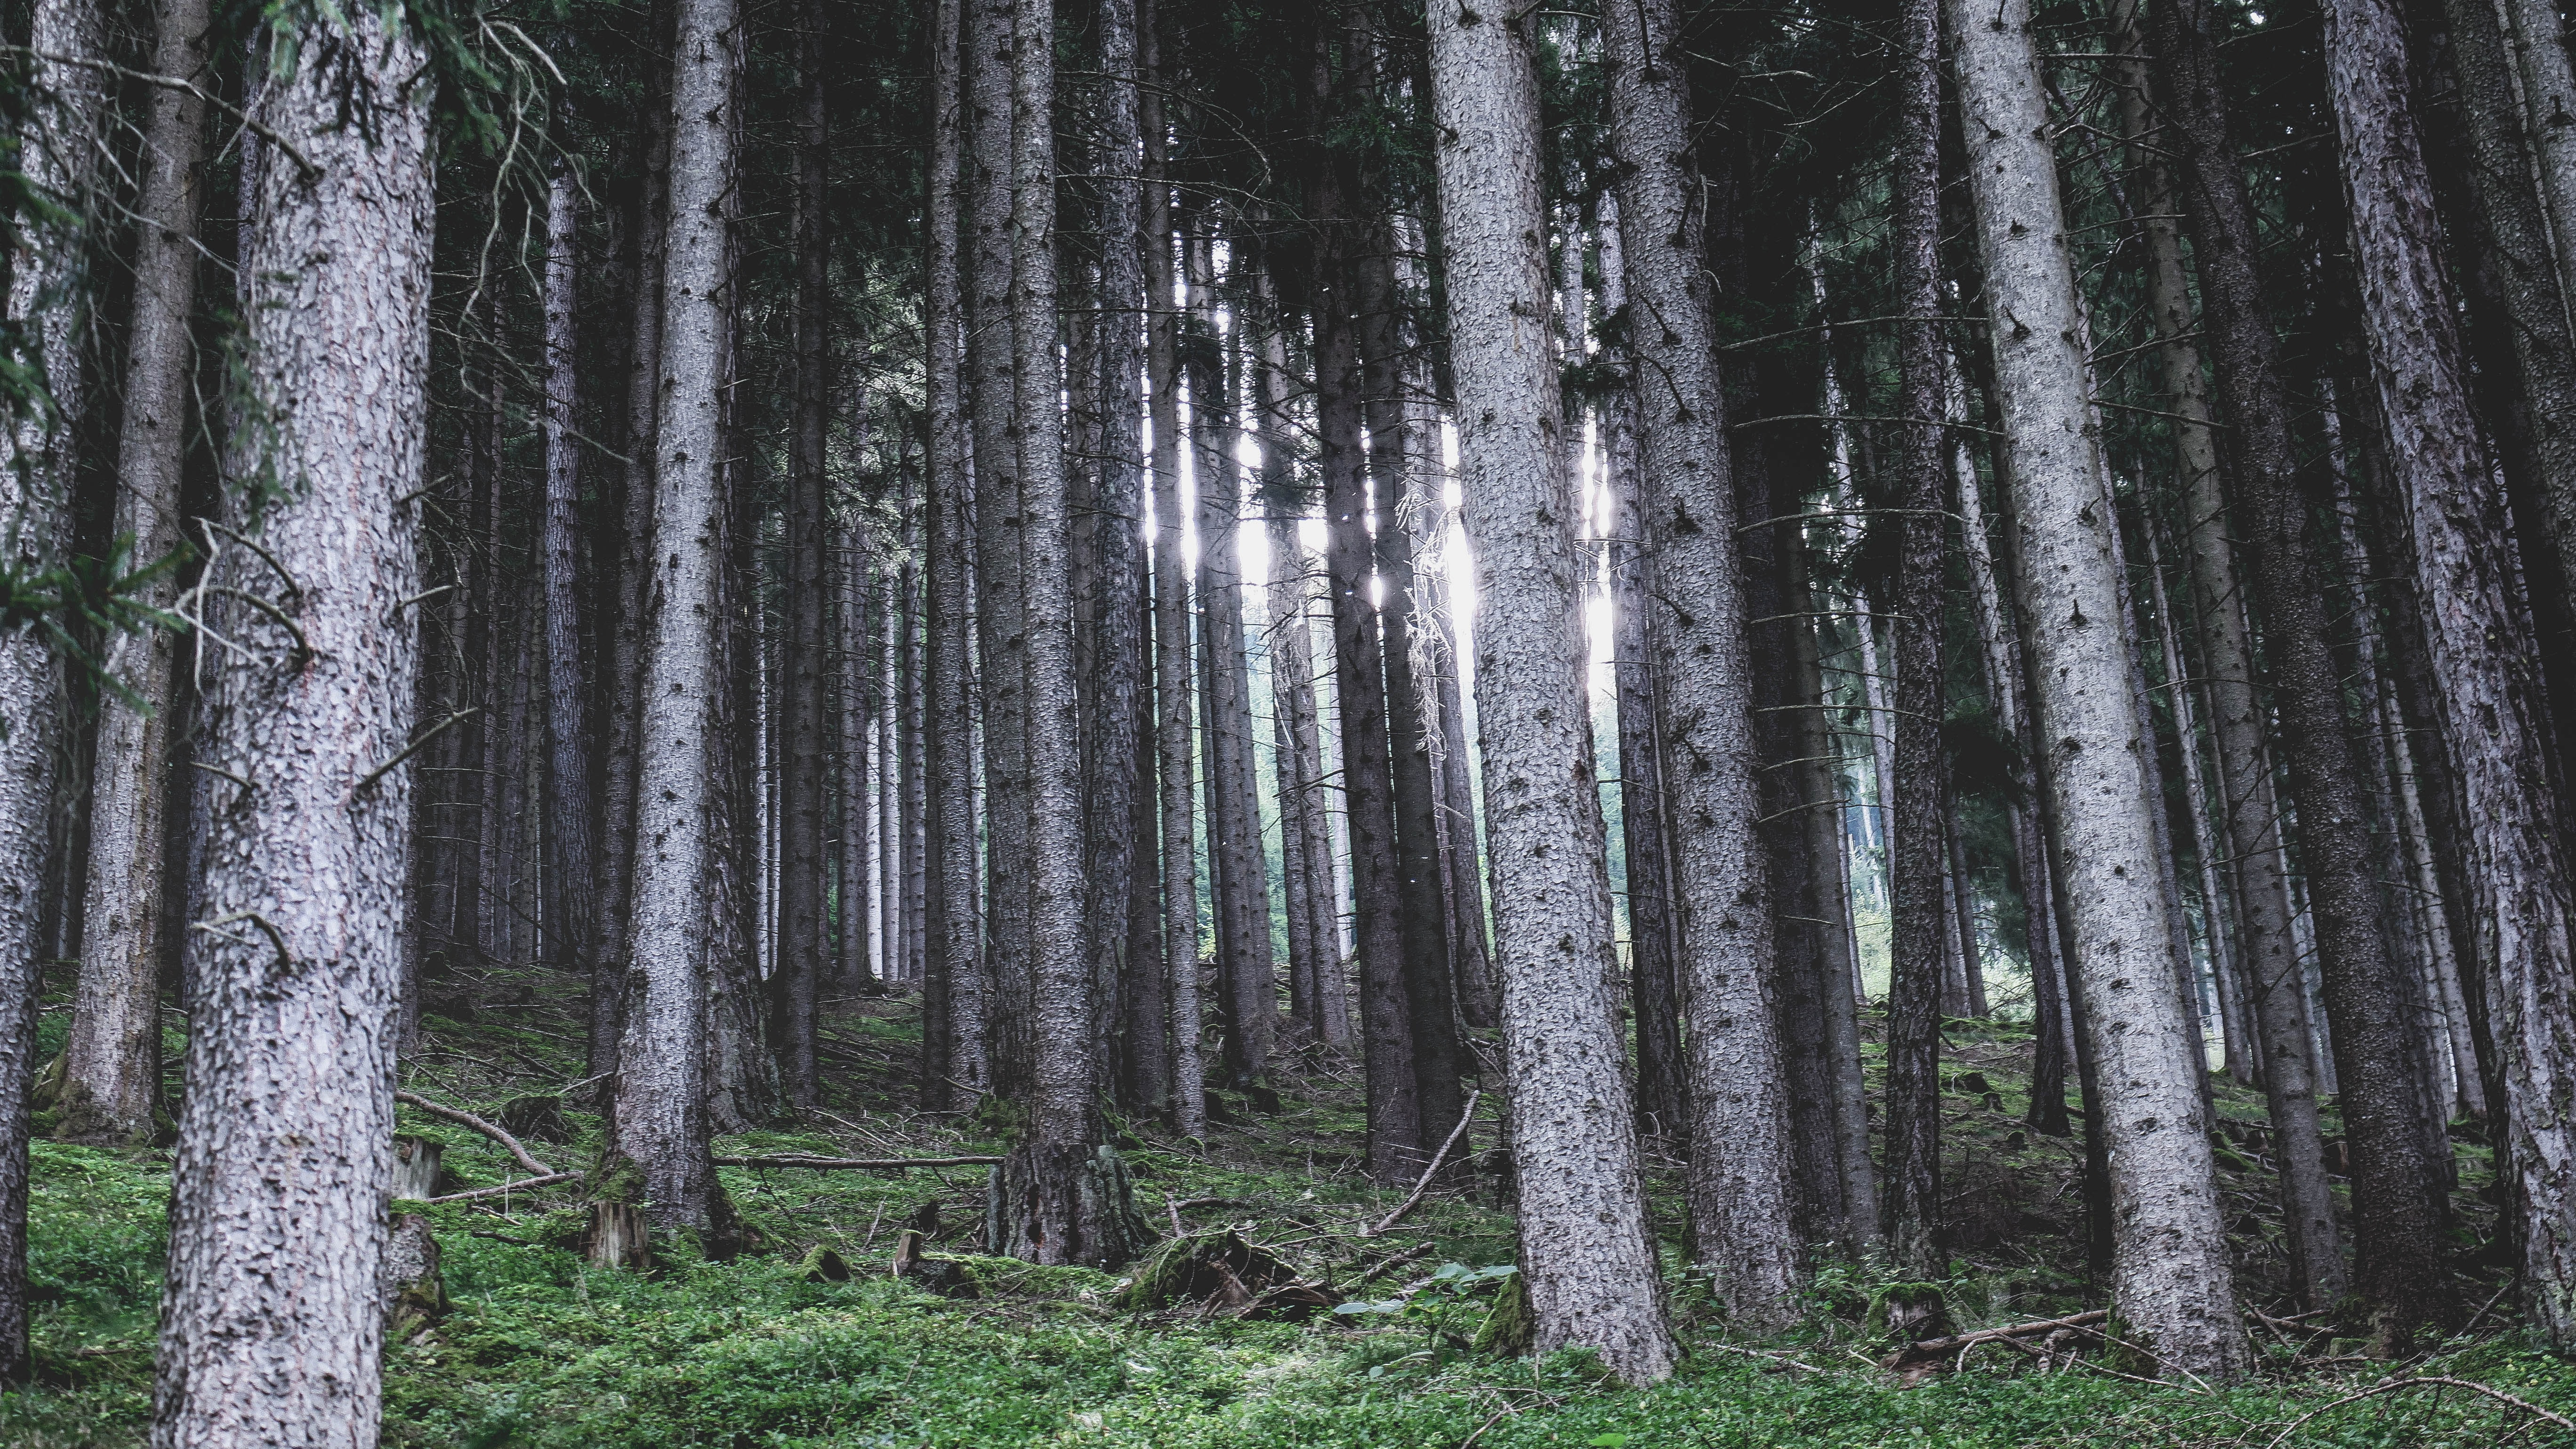 View on tall gray tree trunks on a mossy slope